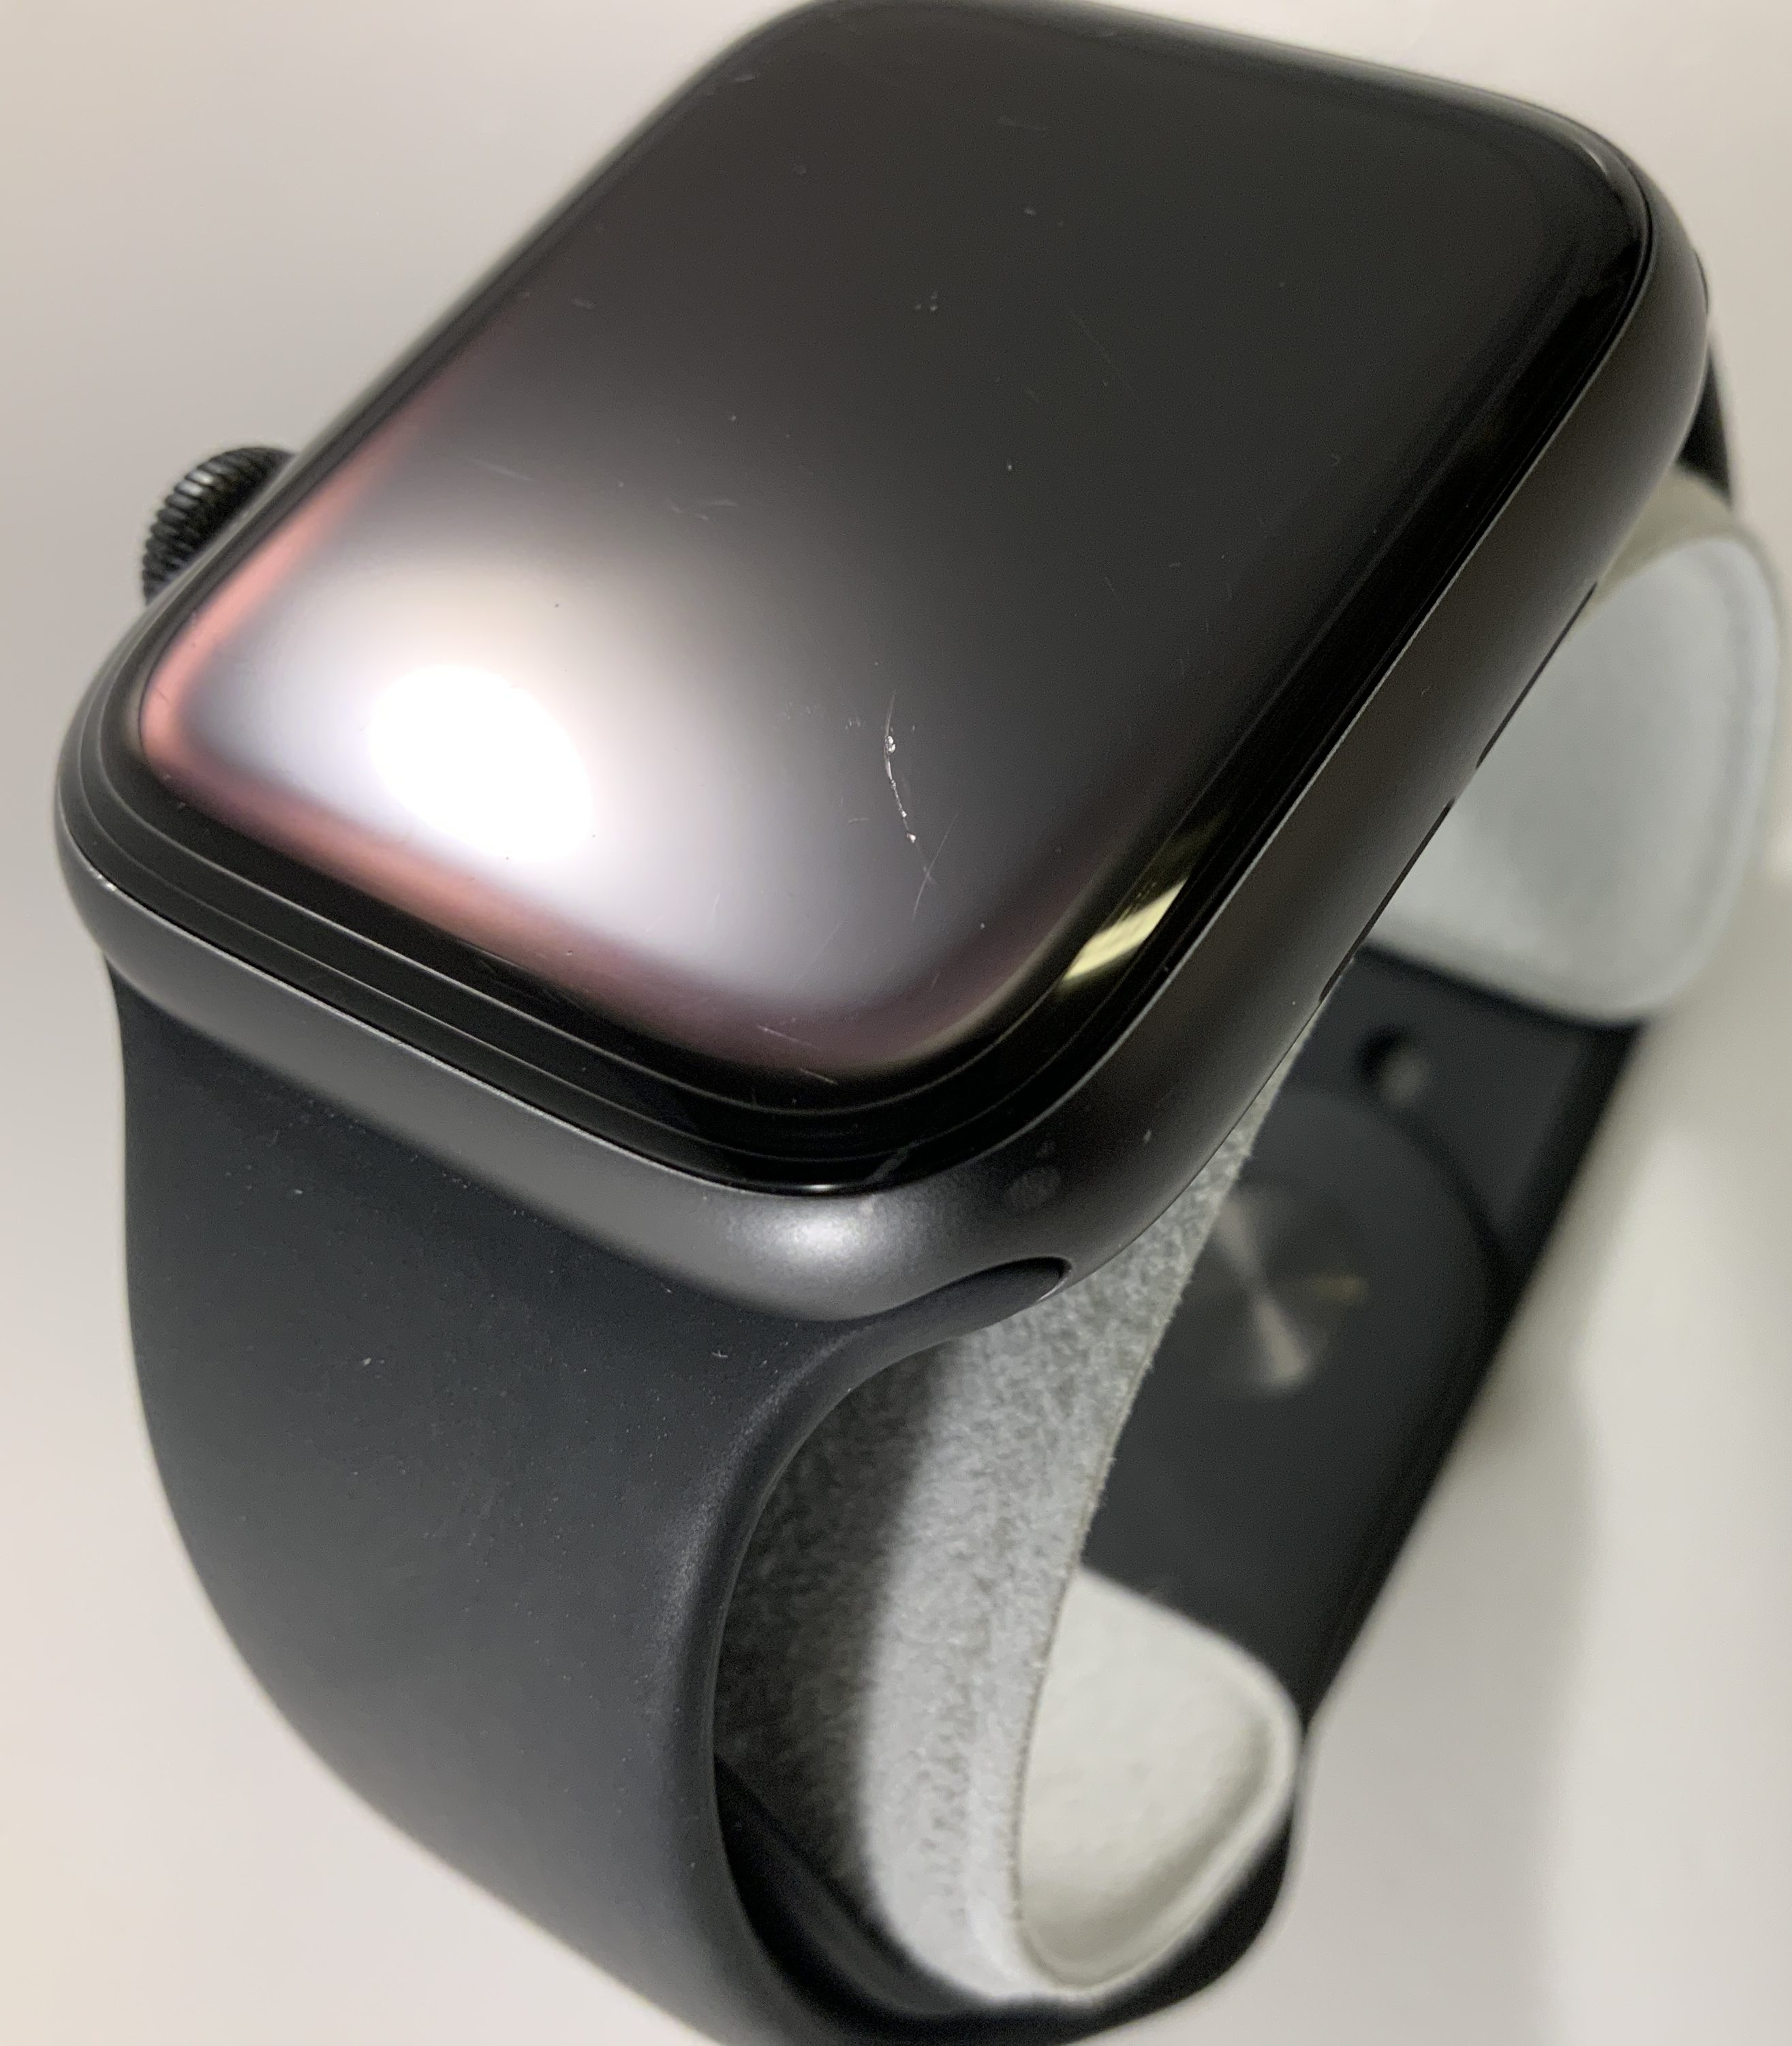 Watch Series 4 Aluminum (44mm), Space Gray, Black Sport Band, Afbeelding 4